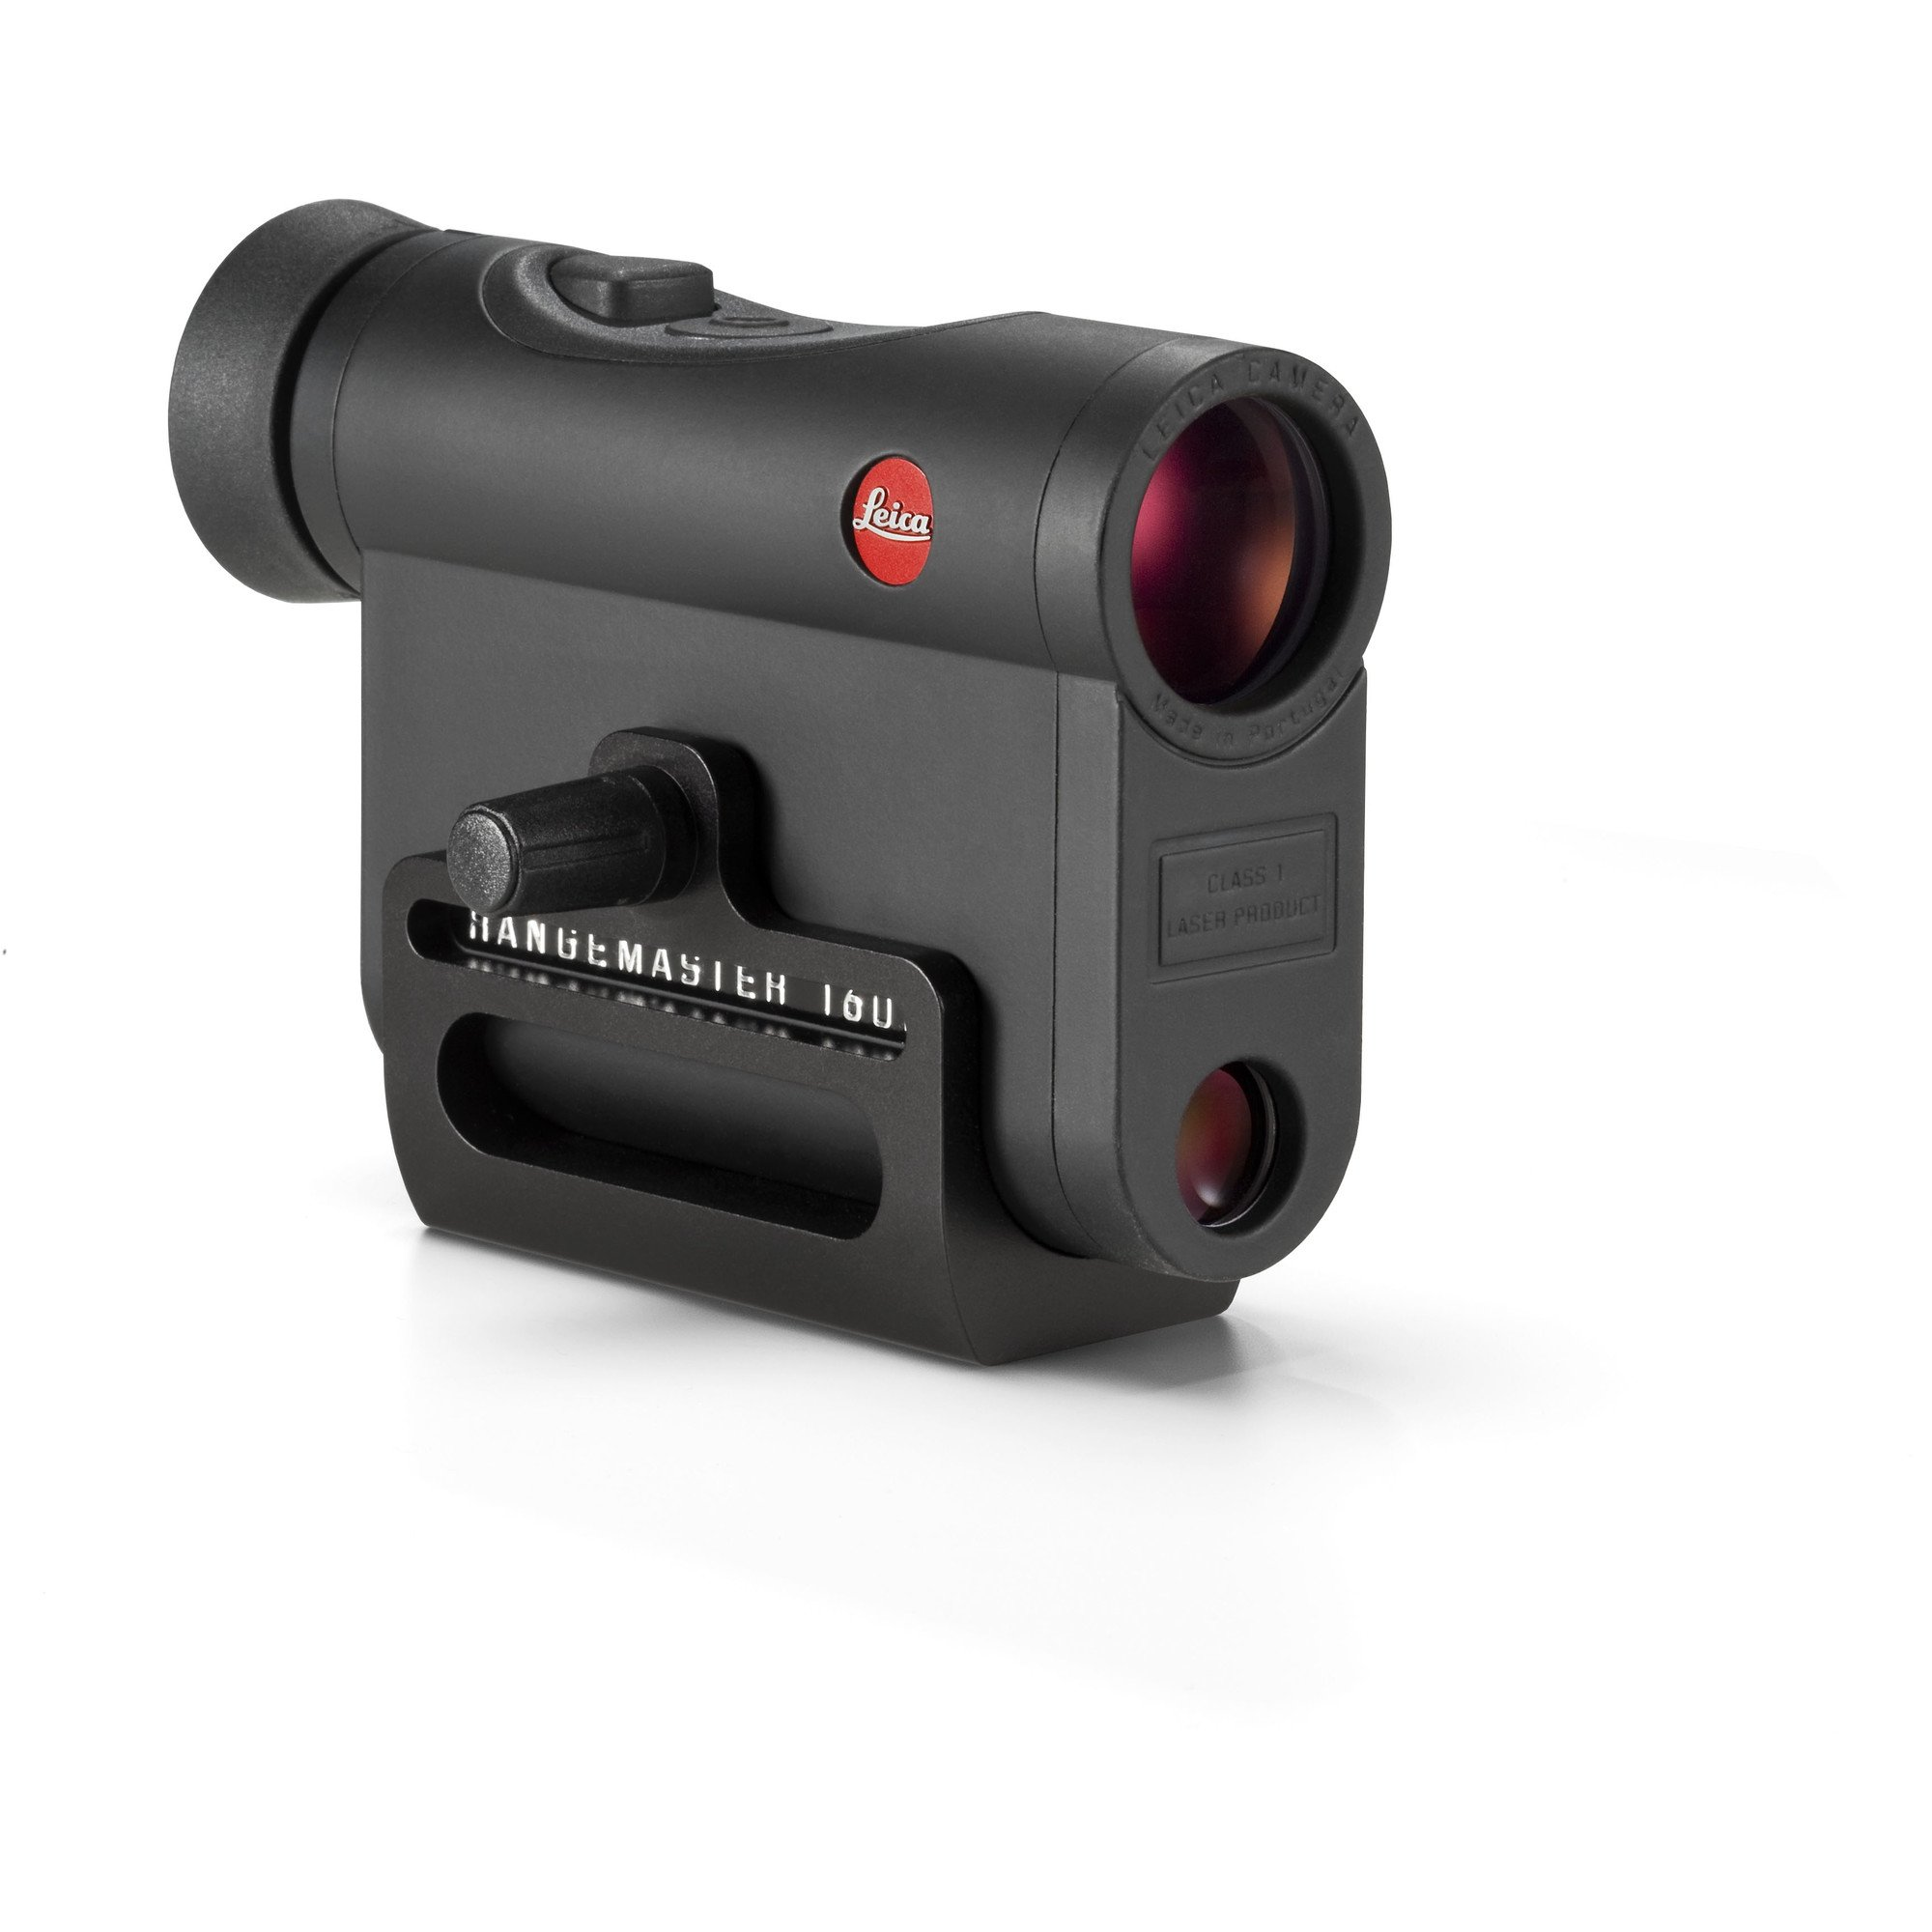 Leica Tripod Adapter for Rangemaster CRF by Leica (Image #2)